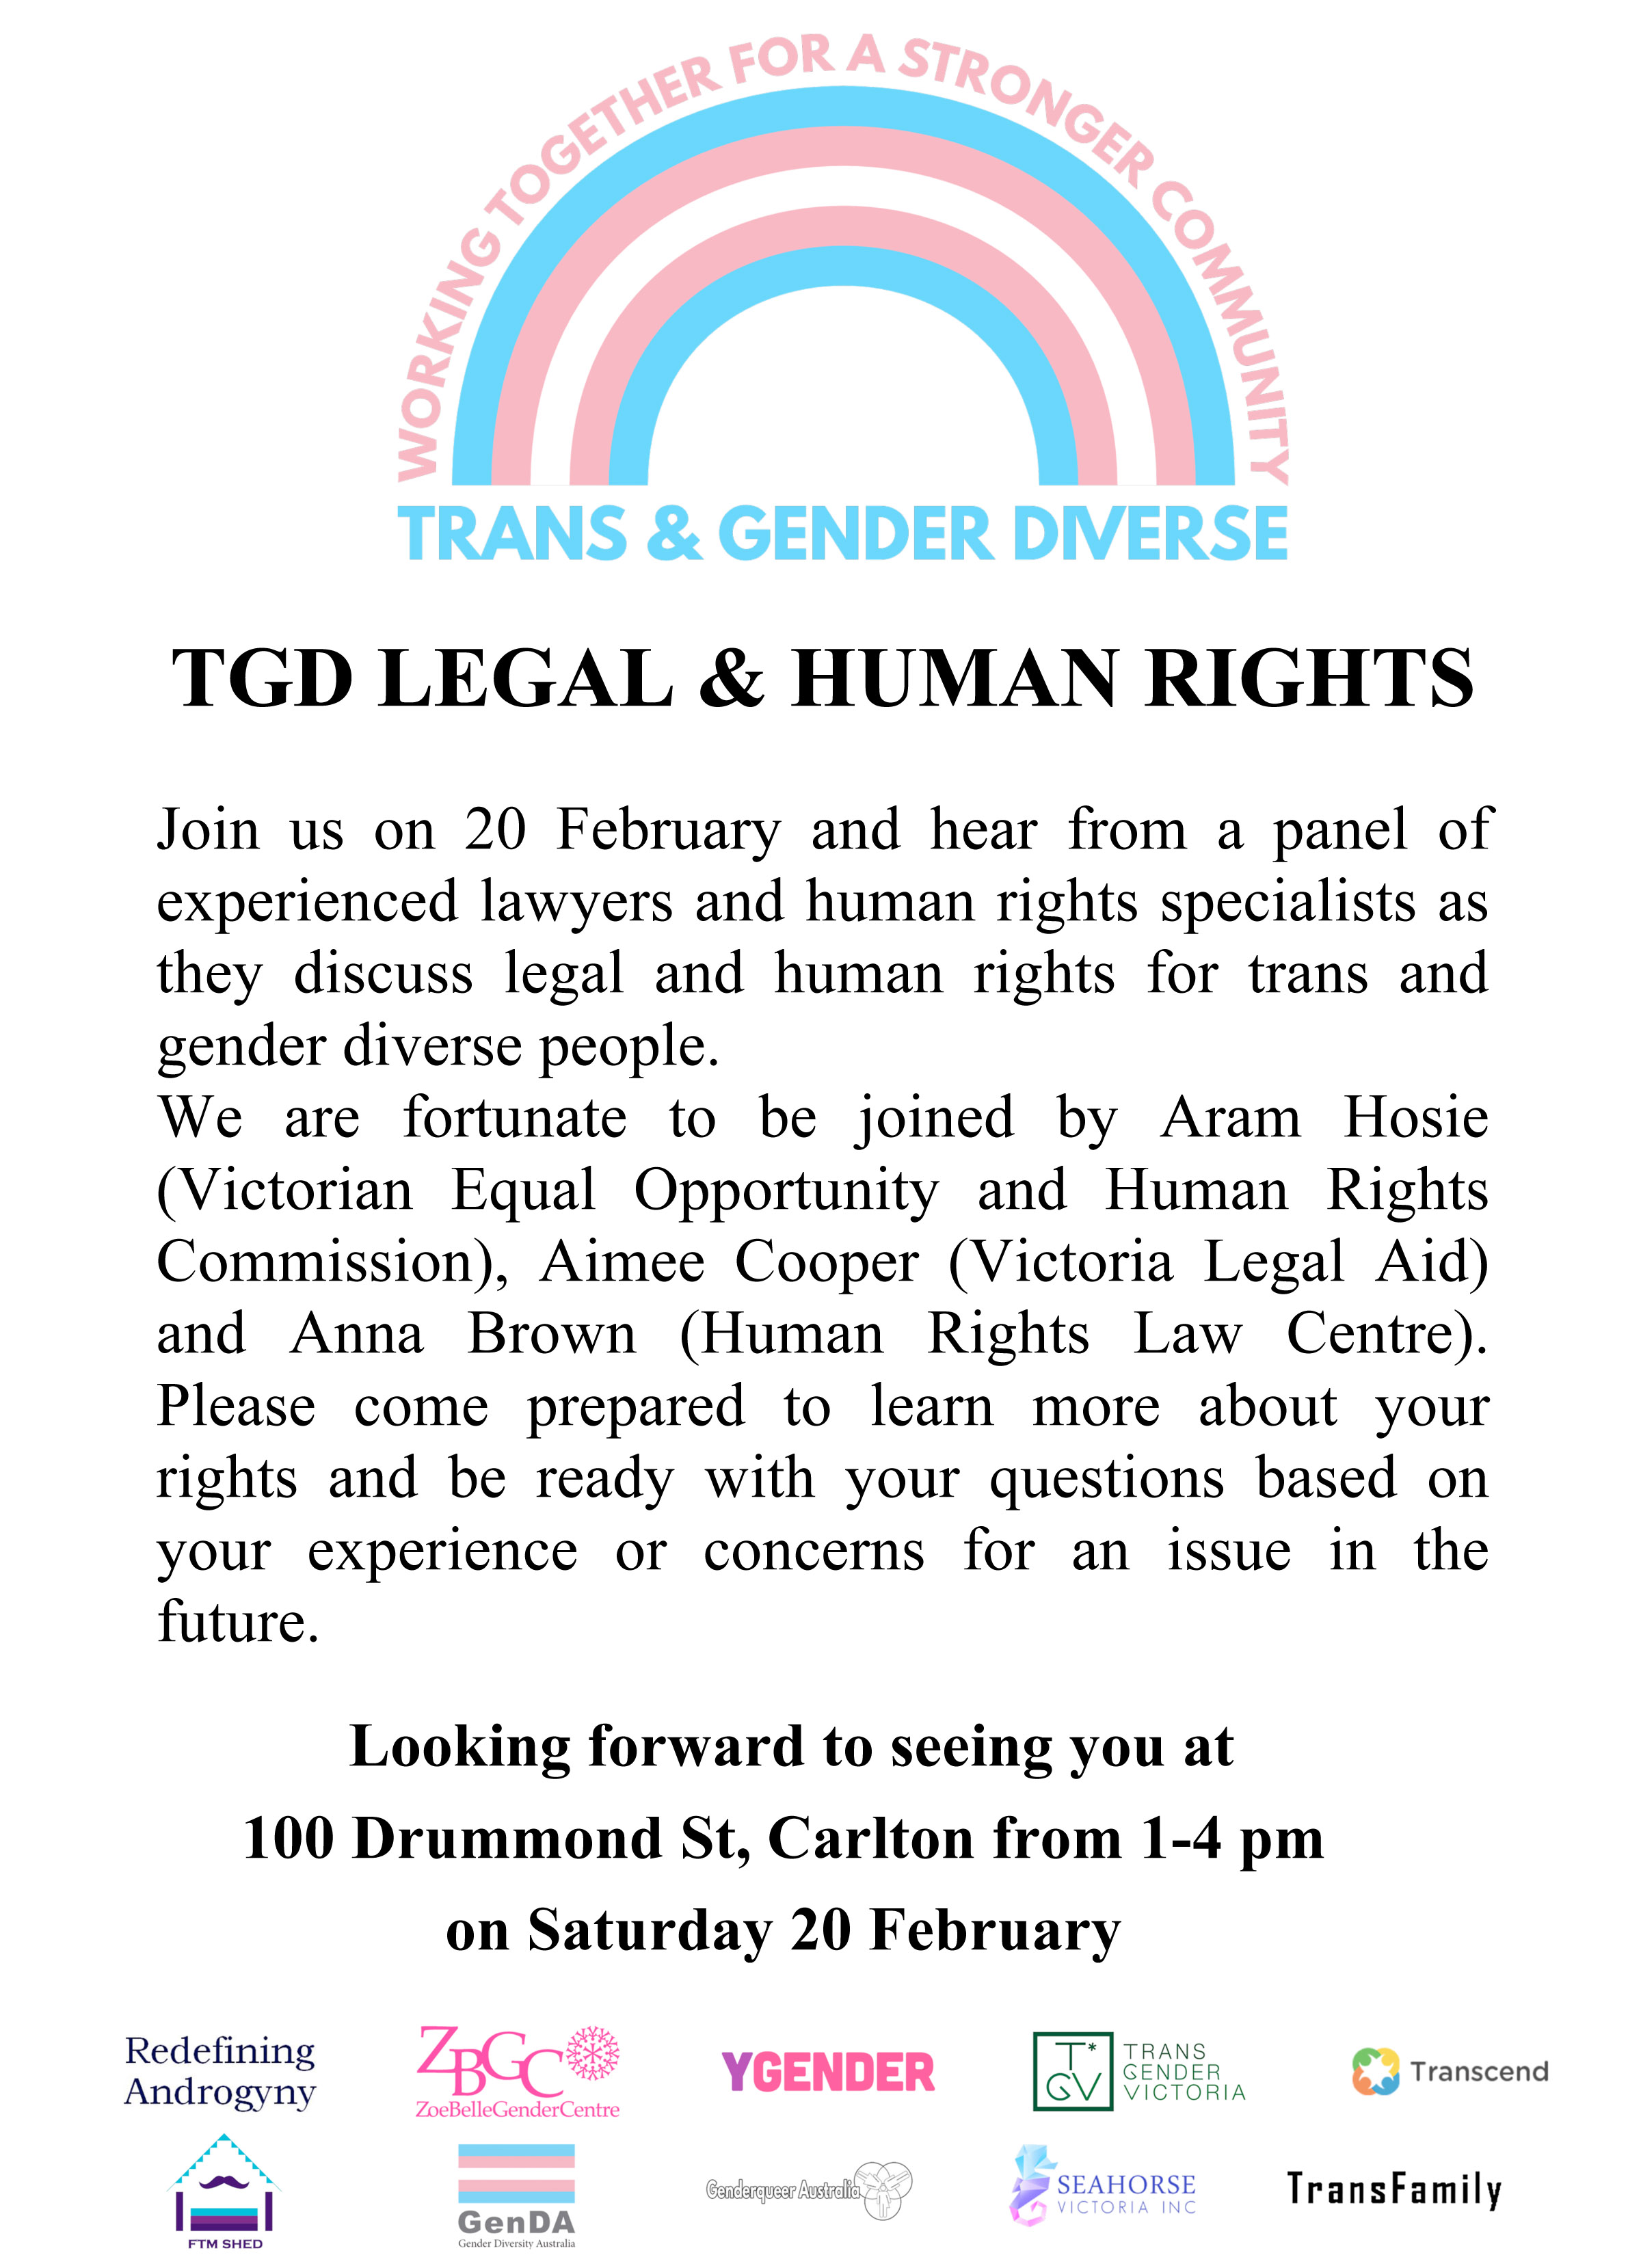 TGD Legal & Human Rights